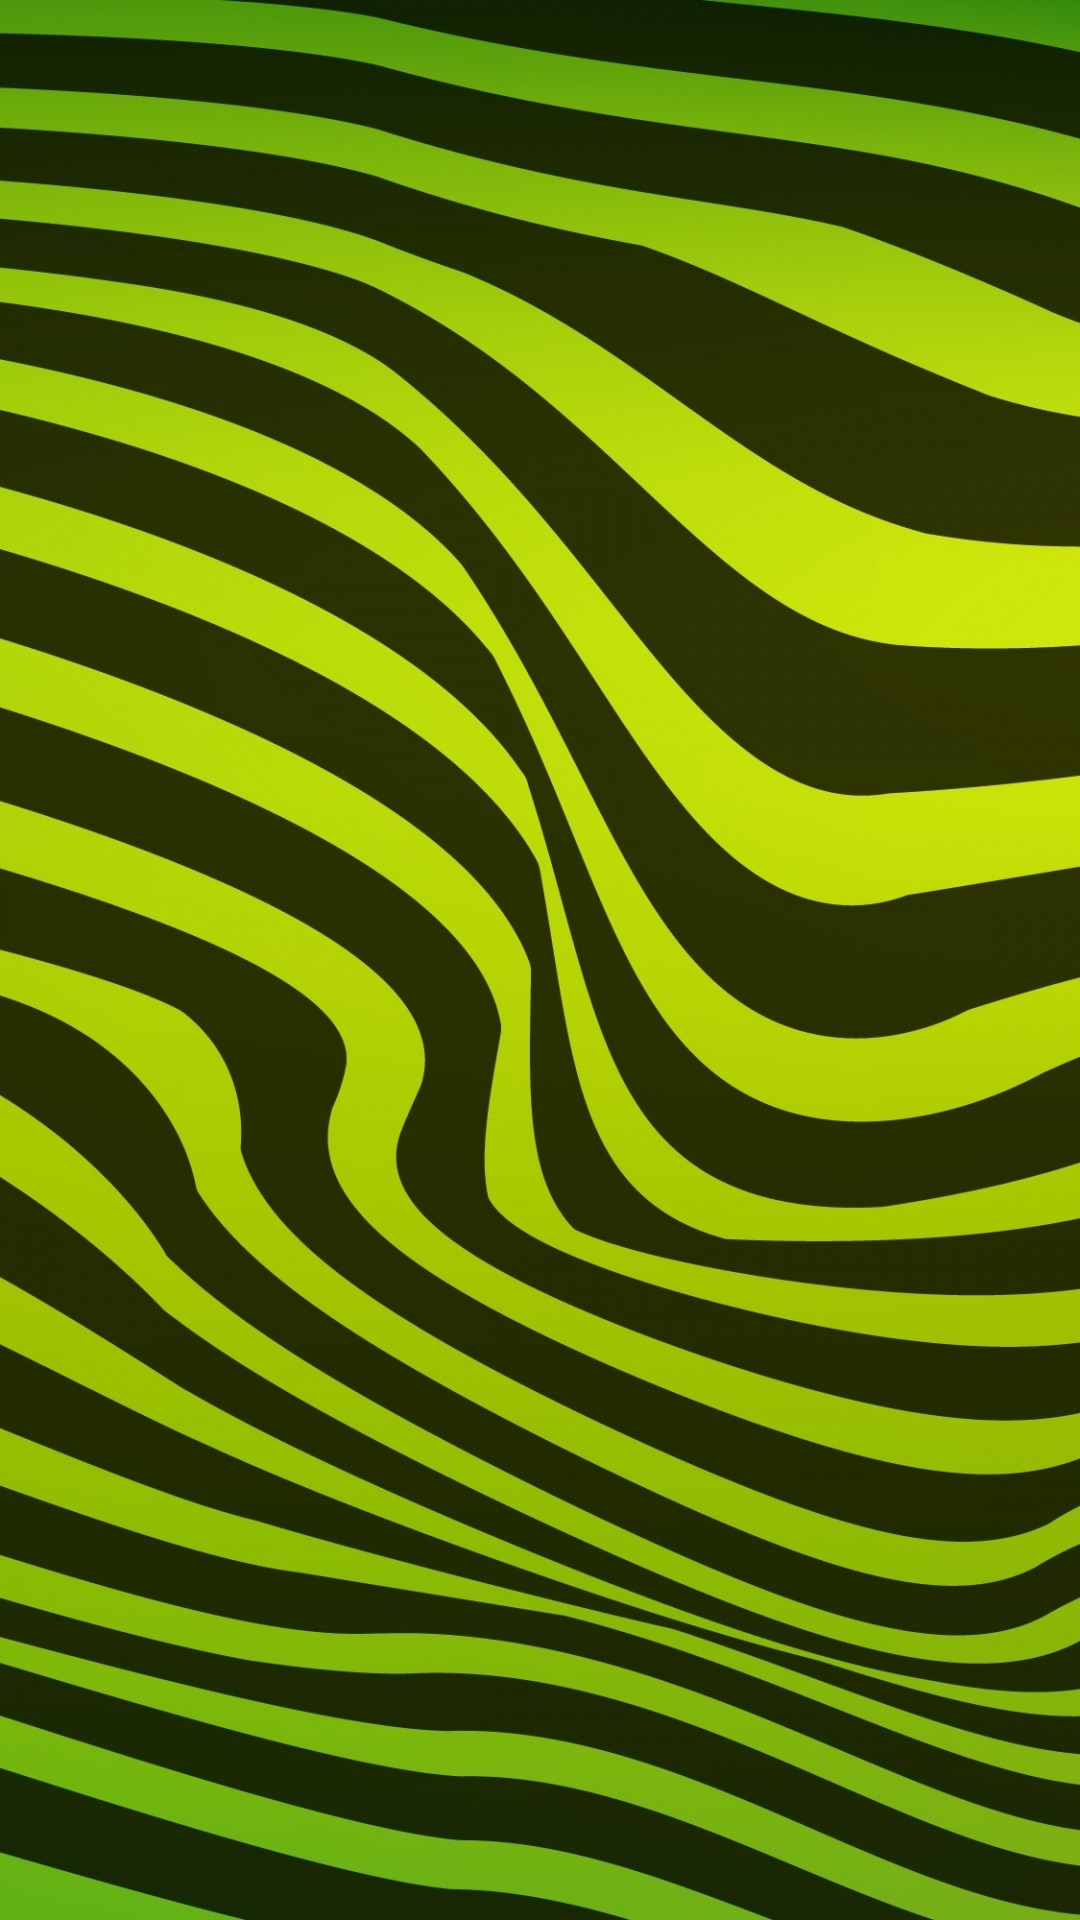 Free Black and green wavy lines phone wallpaper by racitm